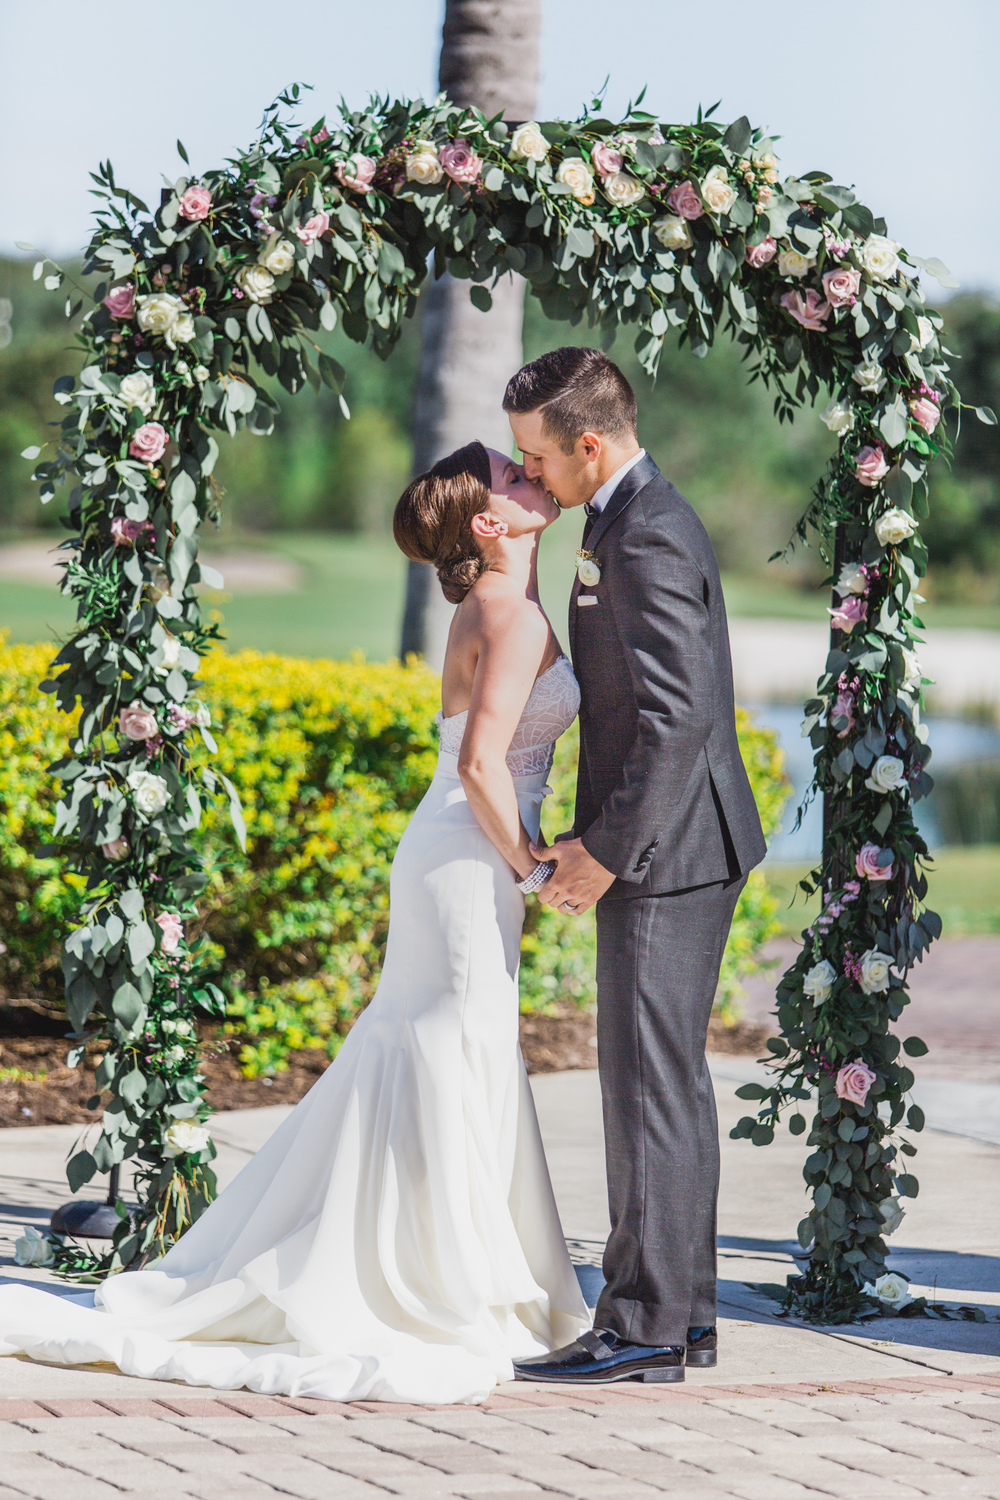 David & Allie - Shingle Creek Wedding Sneak Peek Spring 2016 - Web 12.jpg